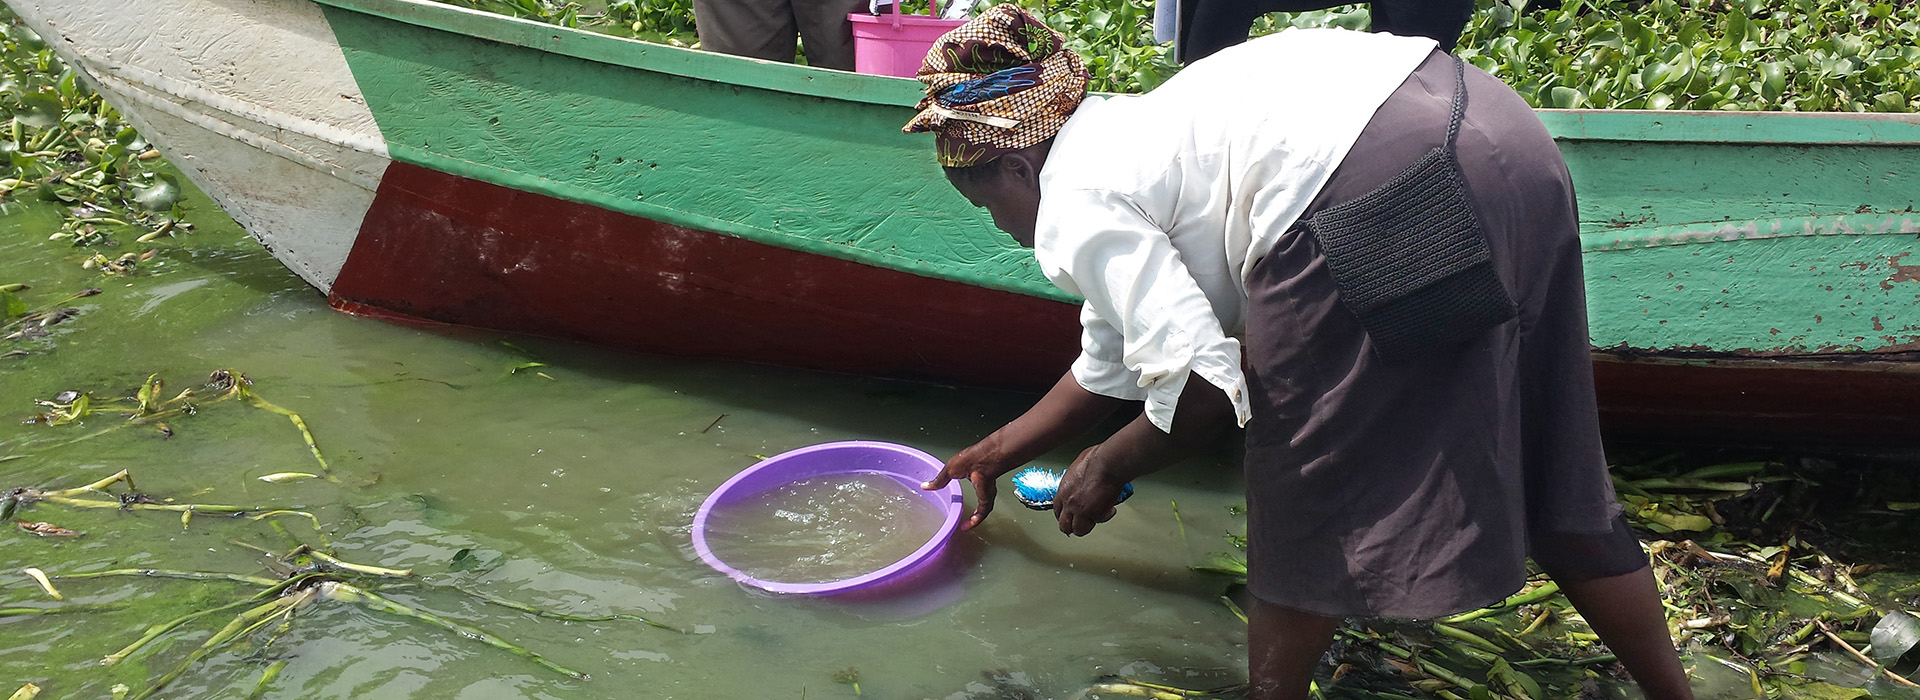 Woman gathering water from Lake Victoria in purple plastic dish